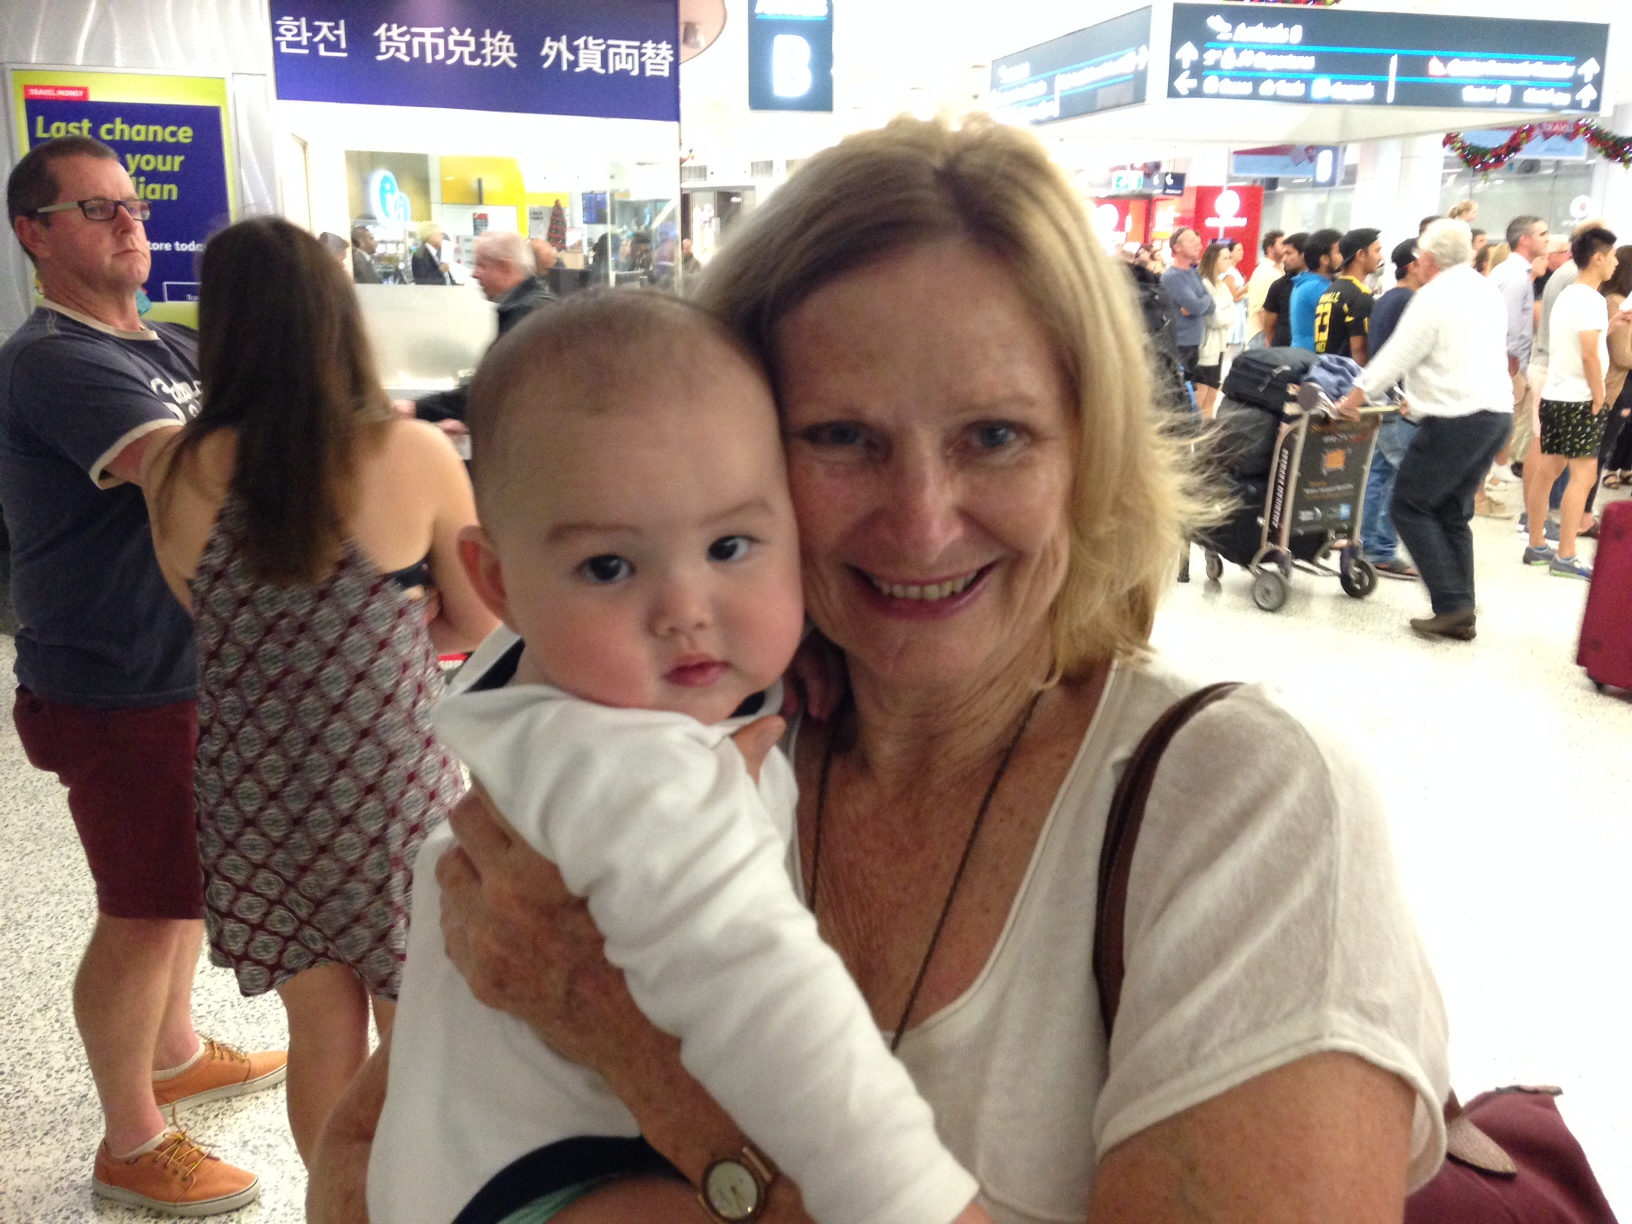 Maxine McCall holding baby at the airport